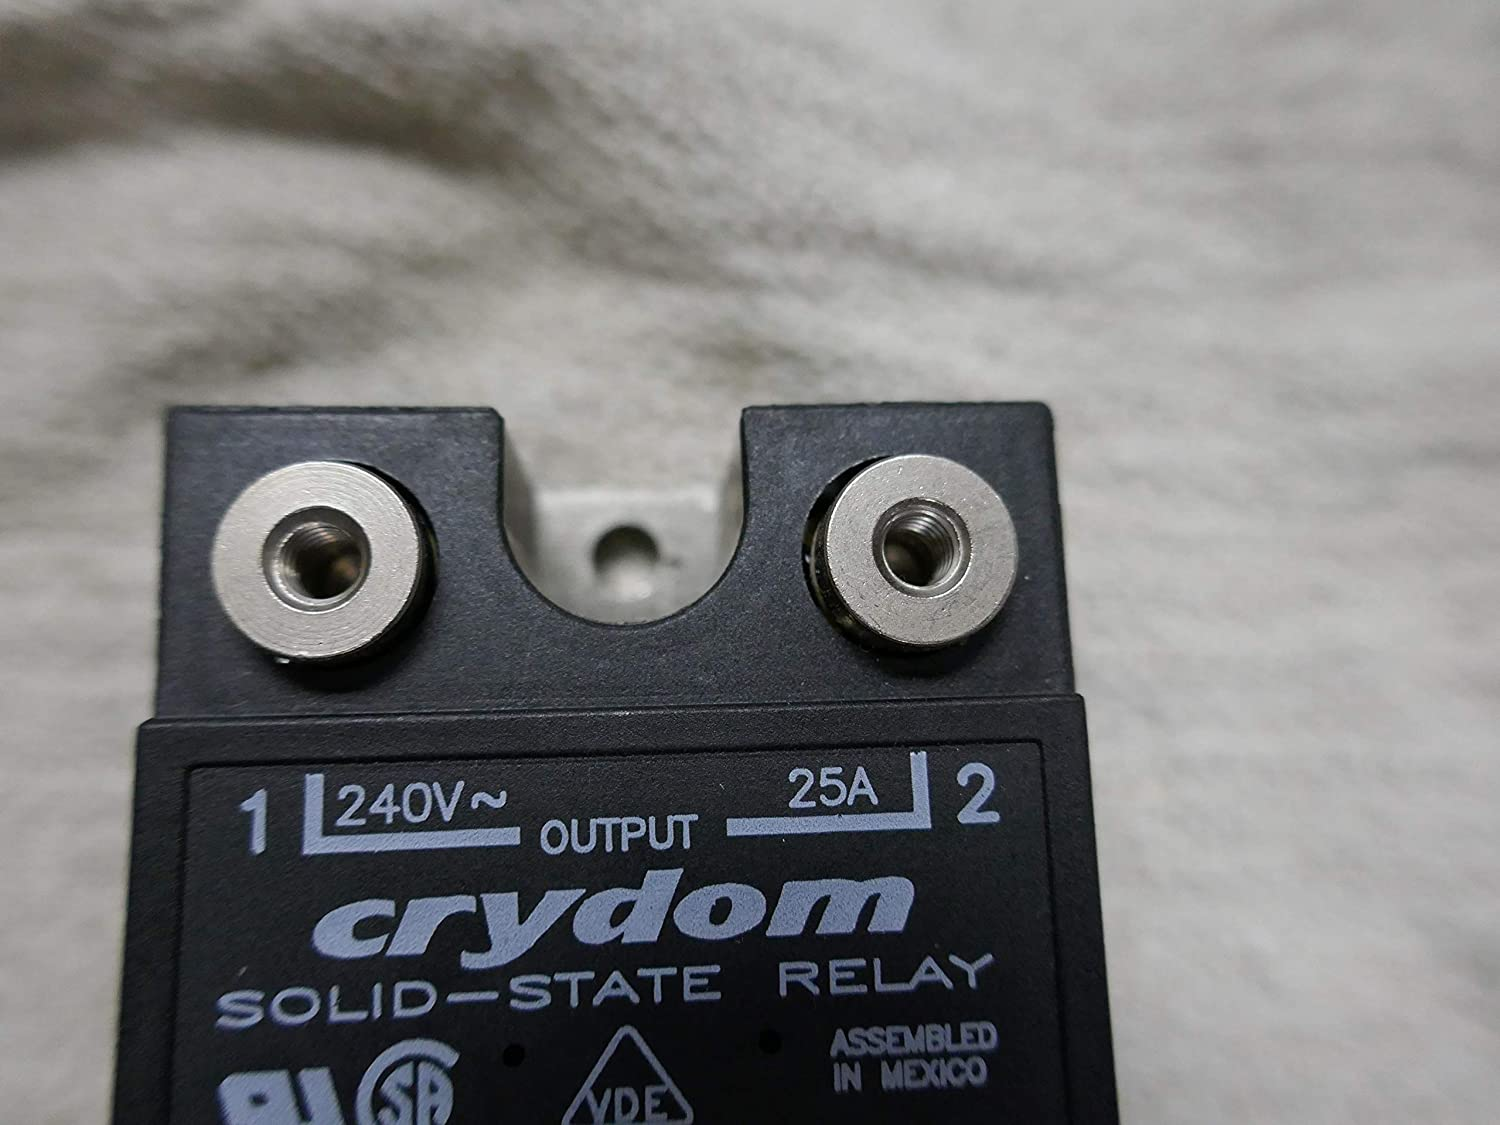 Crydom D2425 Ssr Panel Mount 280vac 32vdc 25a Other Products Solid State Relay Medium Power Single Phase Acsolid Industrial Scientific